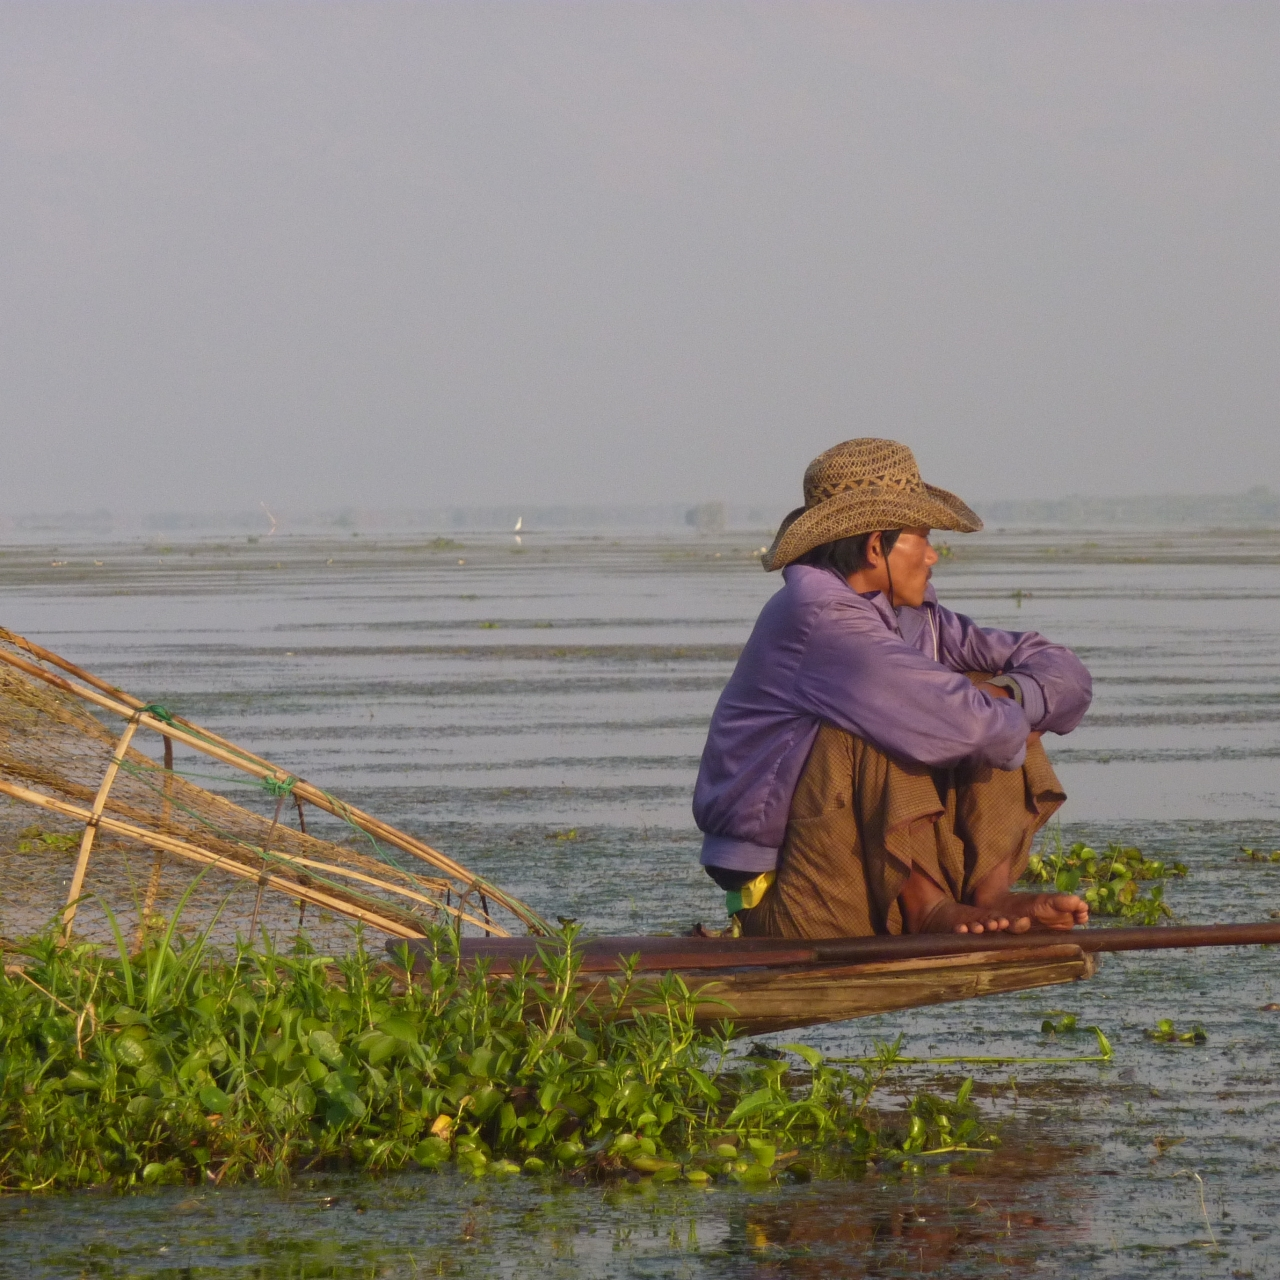 Early morning Inle Lake fisherman resting